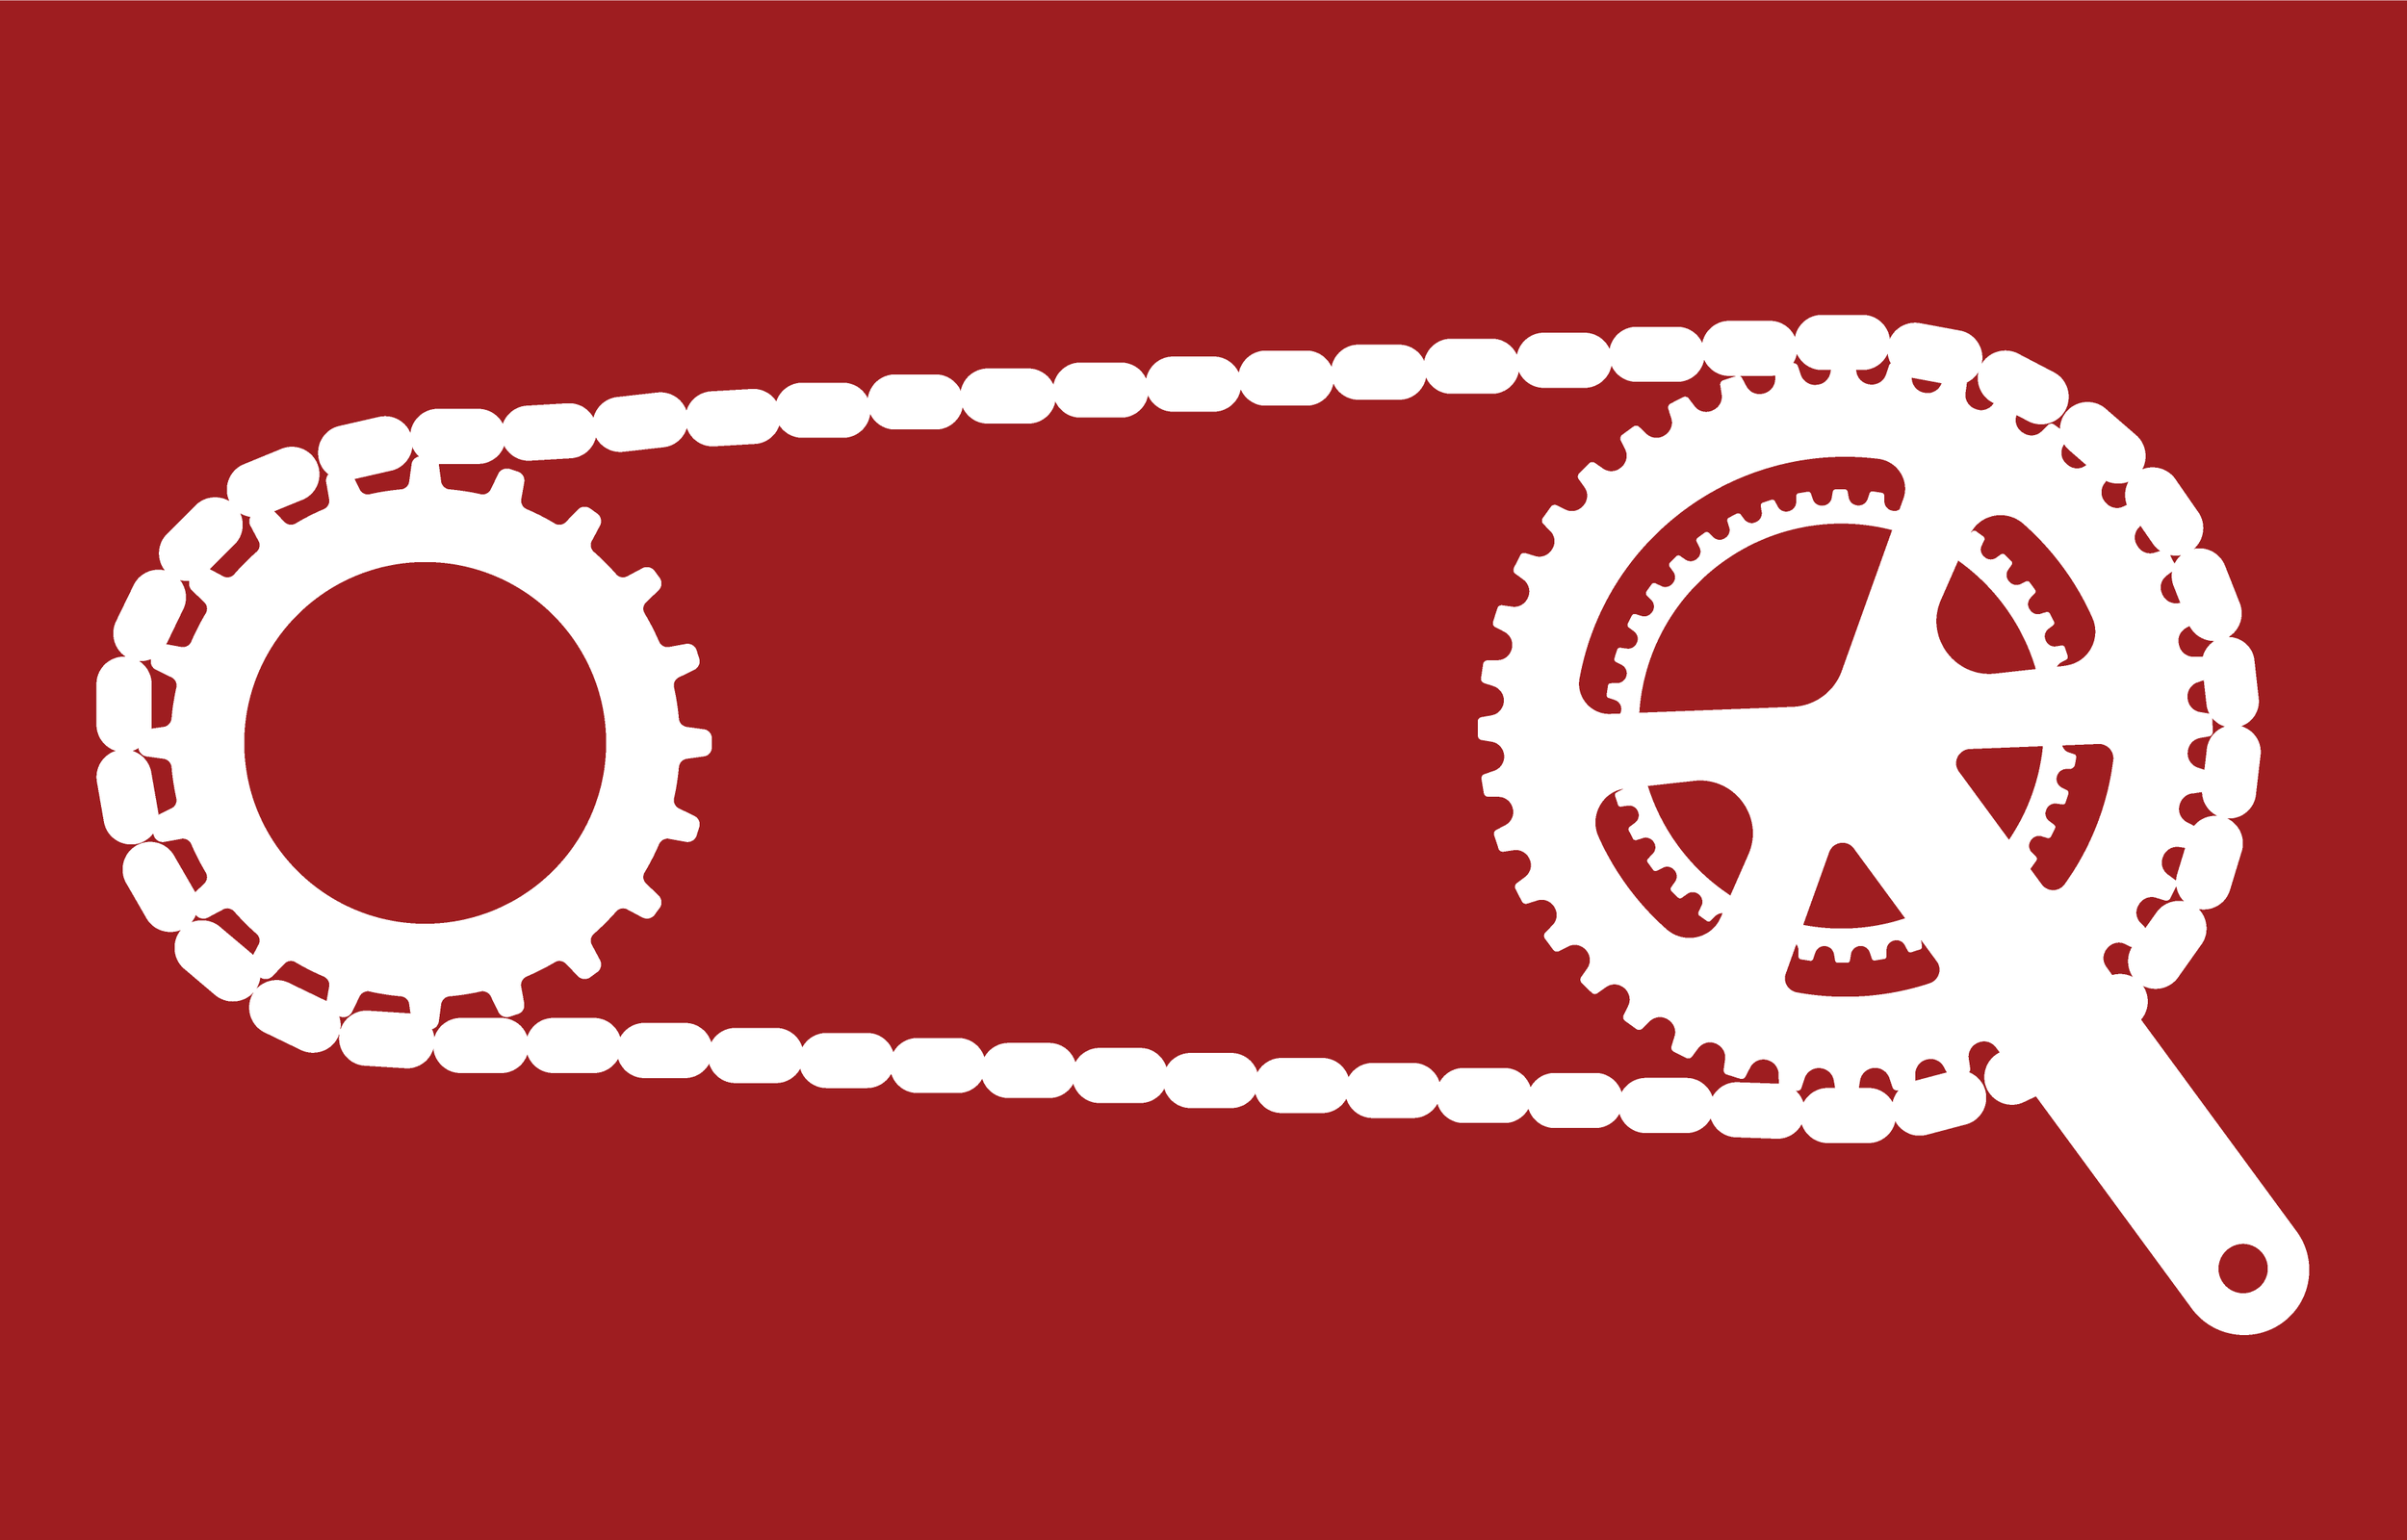 Icon_Gears.png